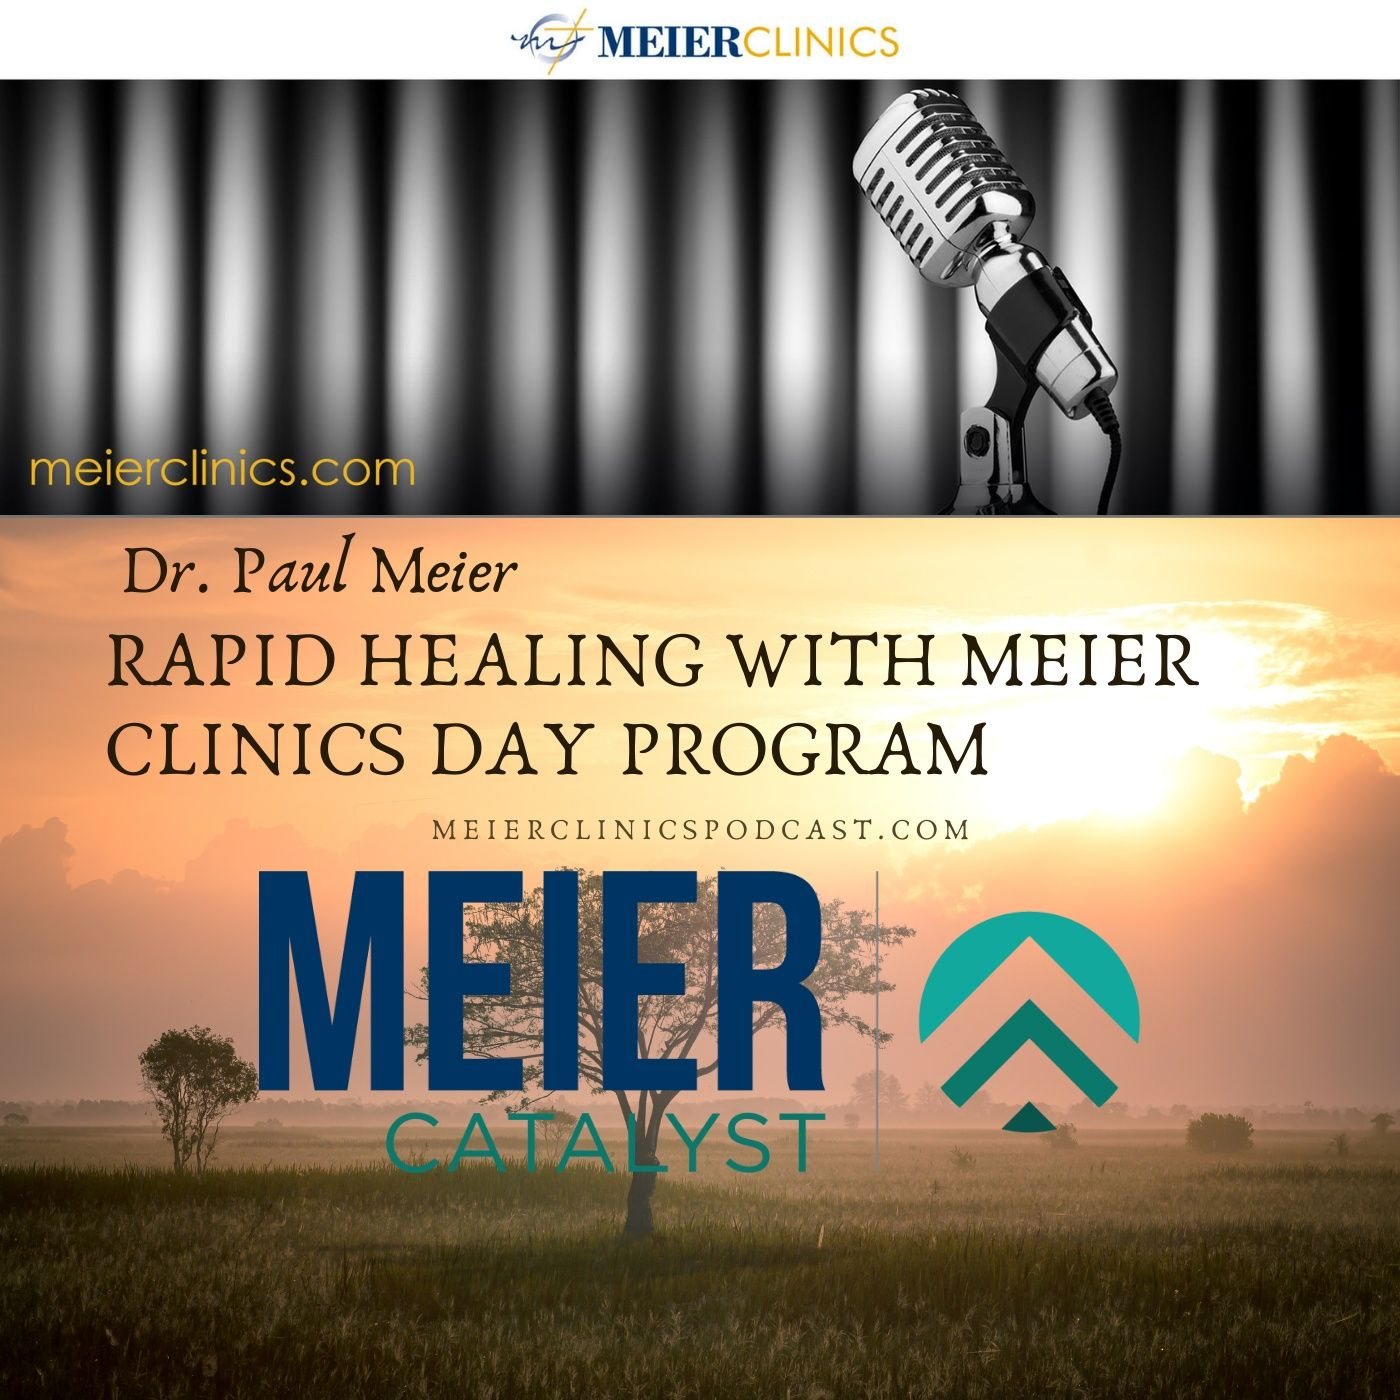 Rapid Healing with Meier Clinics Day Program